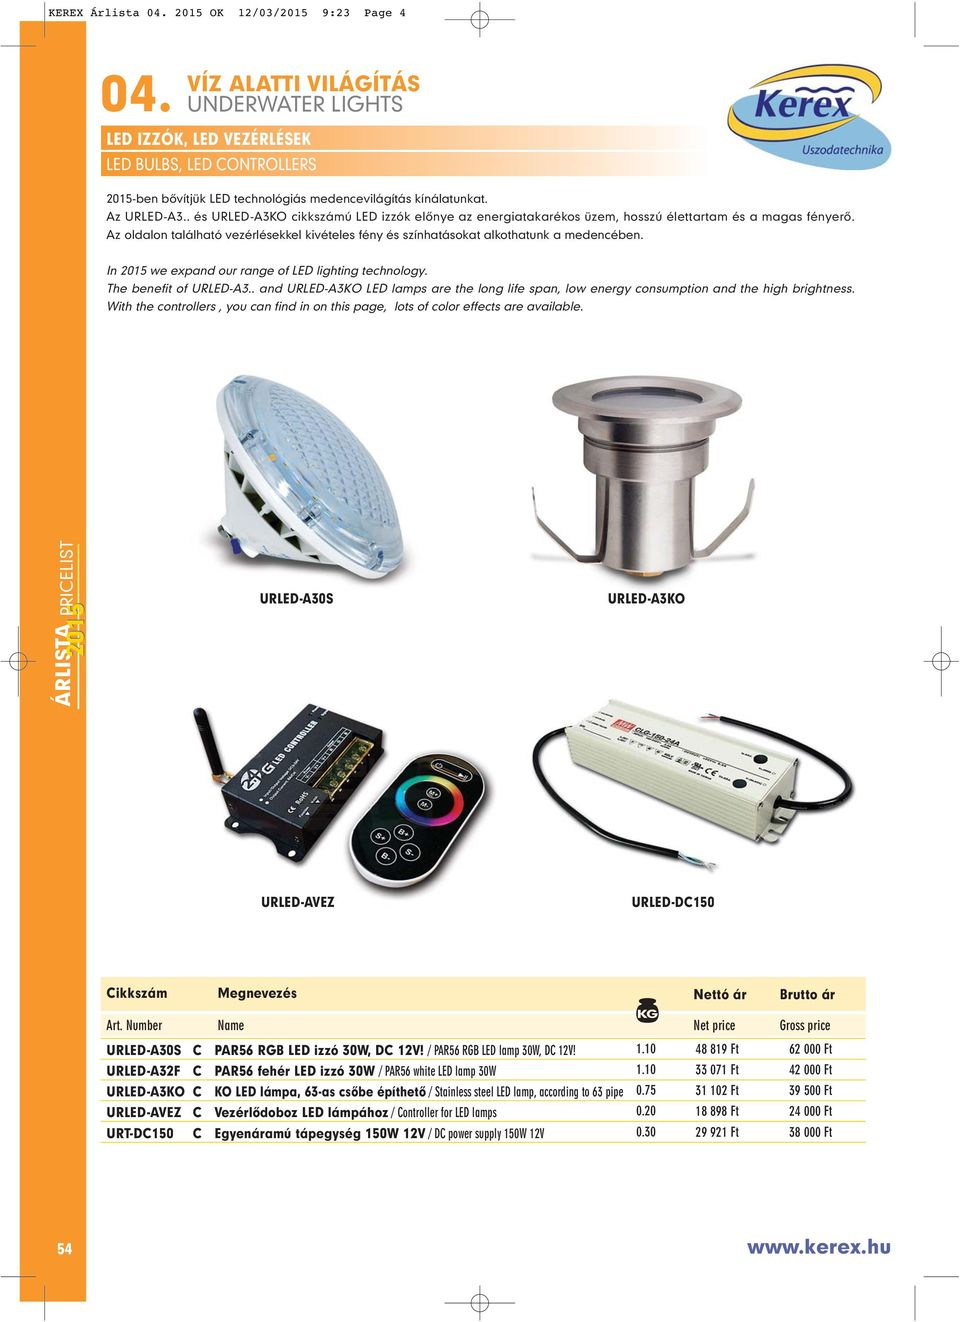 In 2015 we expand our range of LED lighting technology. The benefit of URLED-A3.. and URLED-A3KO LED lamps are the long life span, low energy consumption and the high brightness.